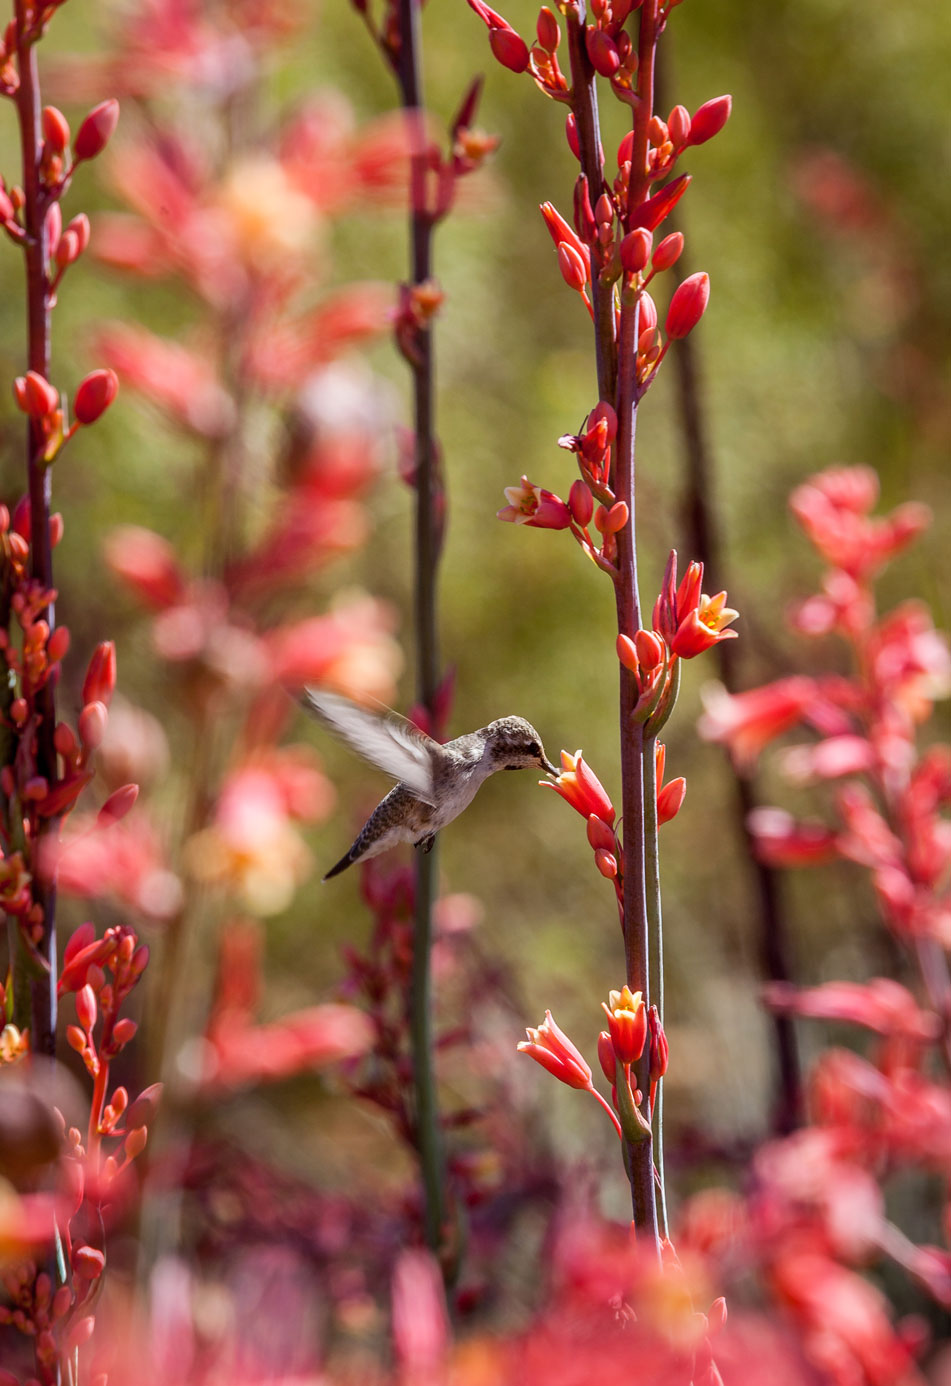 A hummingbird looking for nectar from Red Hesperaloe flowers.